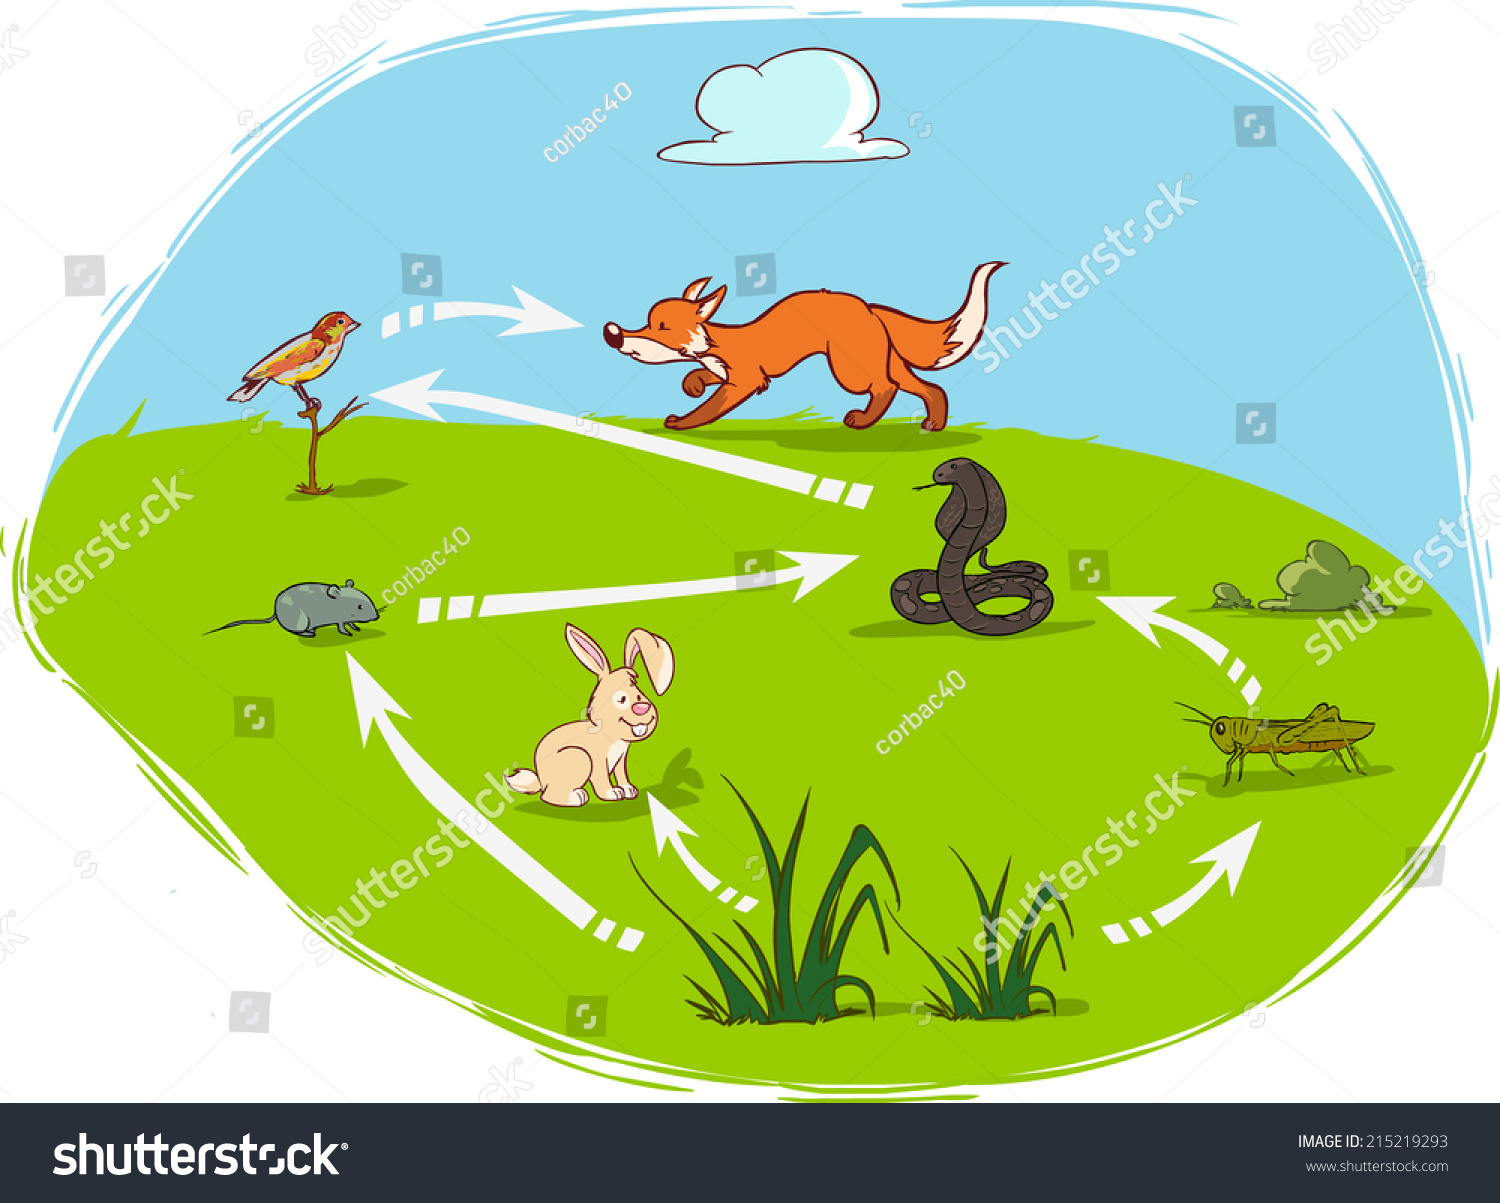 ecosystem diagram stock vector illustration    shutterstockecosystem diagram preview  save to a lightbox